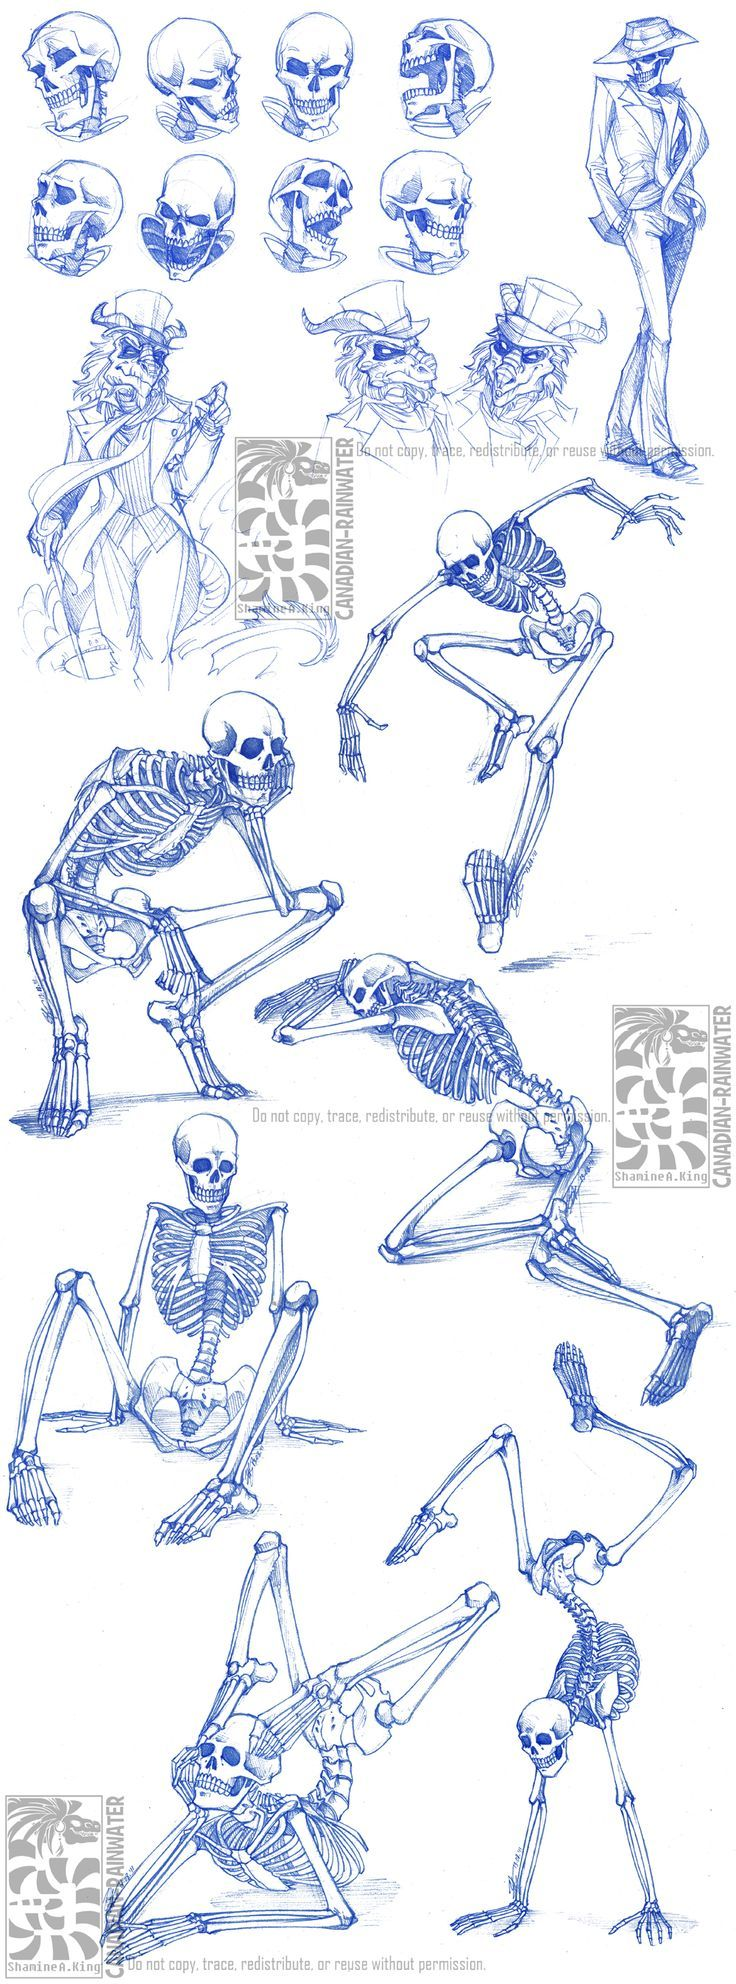 Skeletal Sketchdump by *Canadian-Rainwater on deviantART: